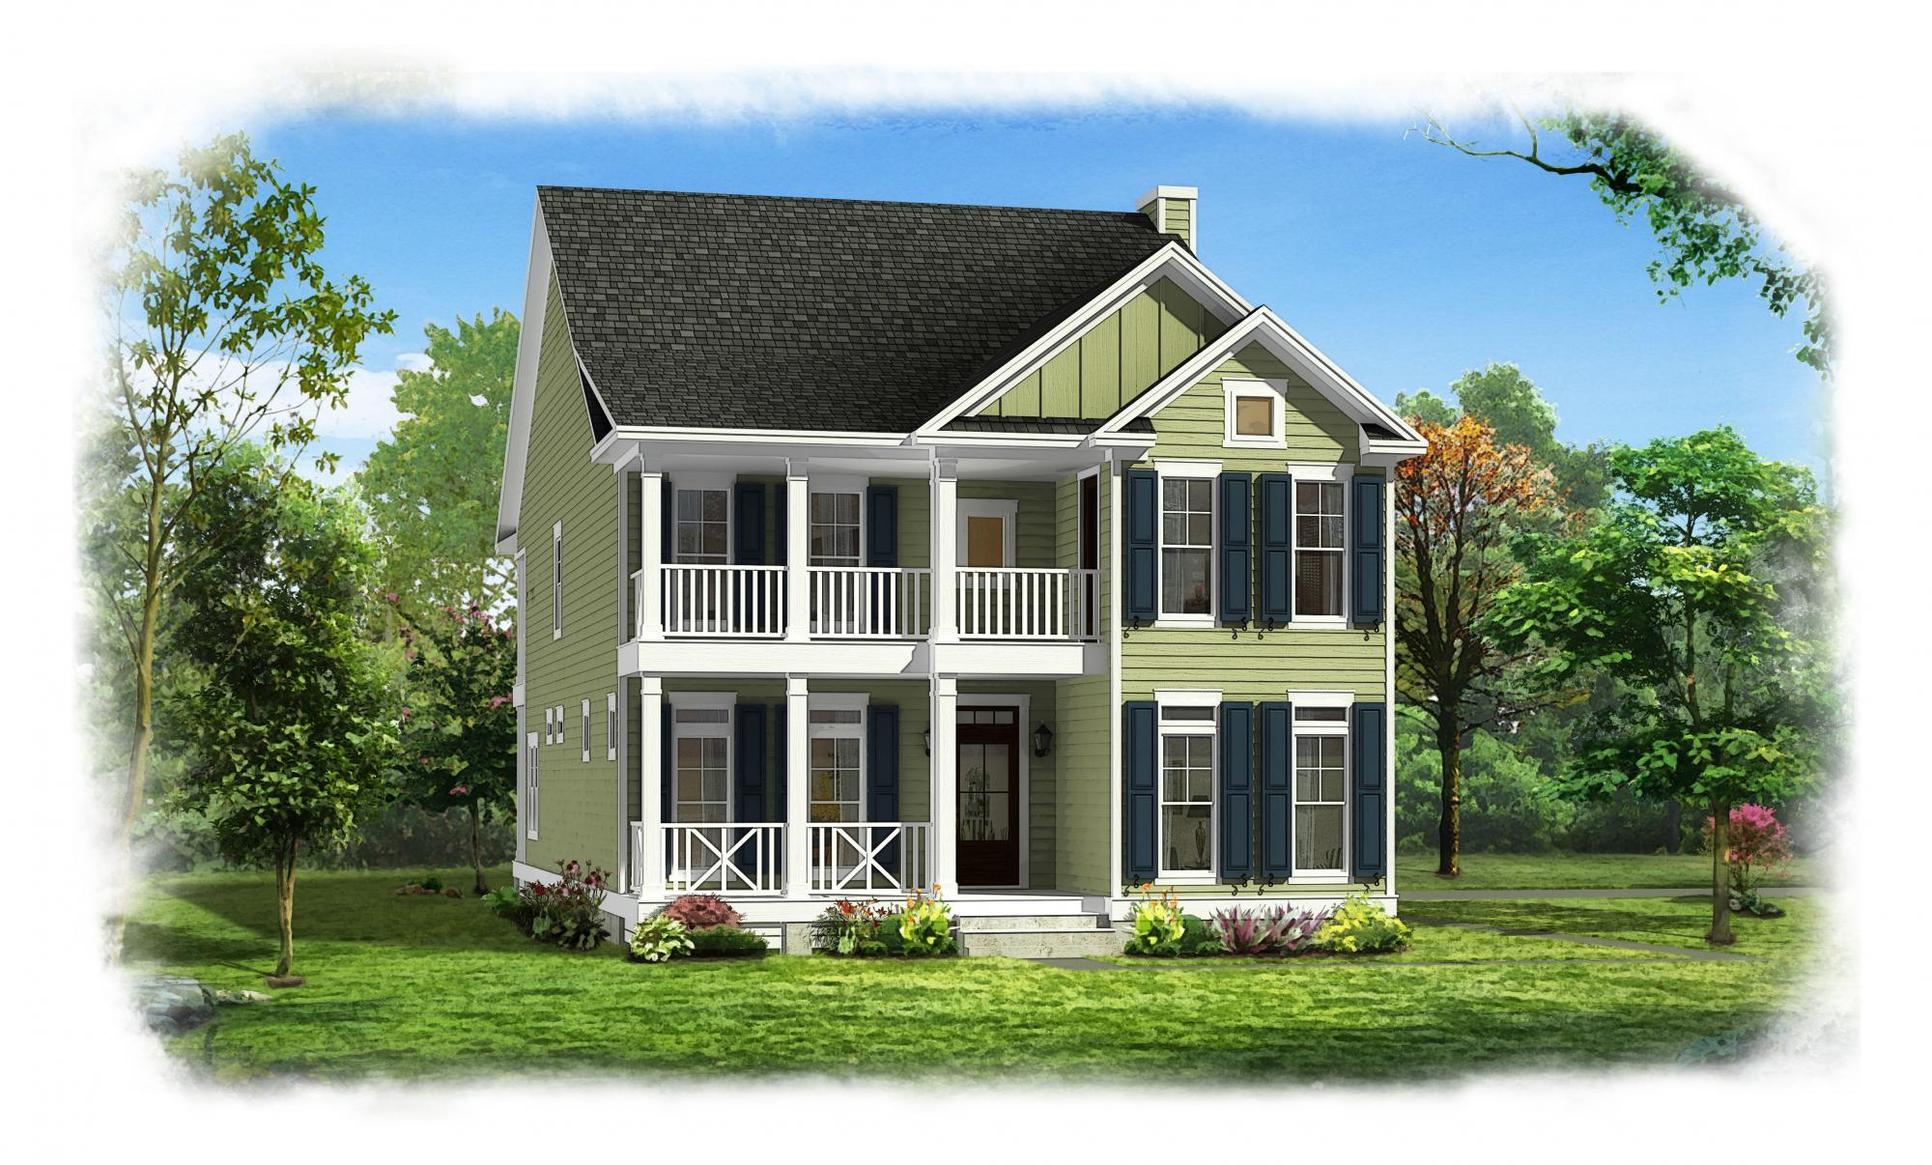 Exterior:Konter Quality Homes Bluffside The SeaBrook 20160308